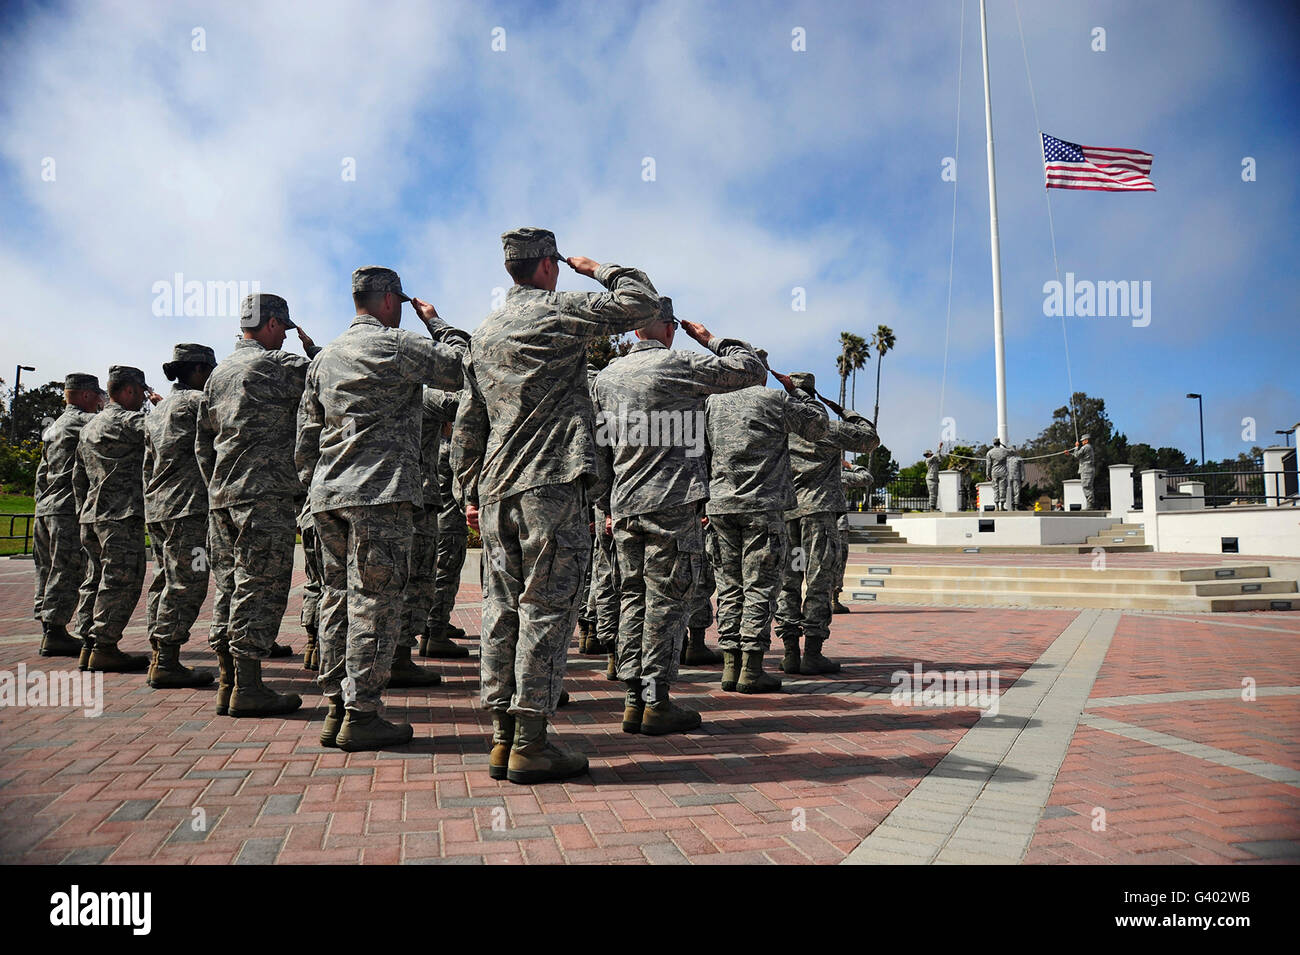 Members of the 30th Space Wing perform a retreat ceremony. - Stock Image